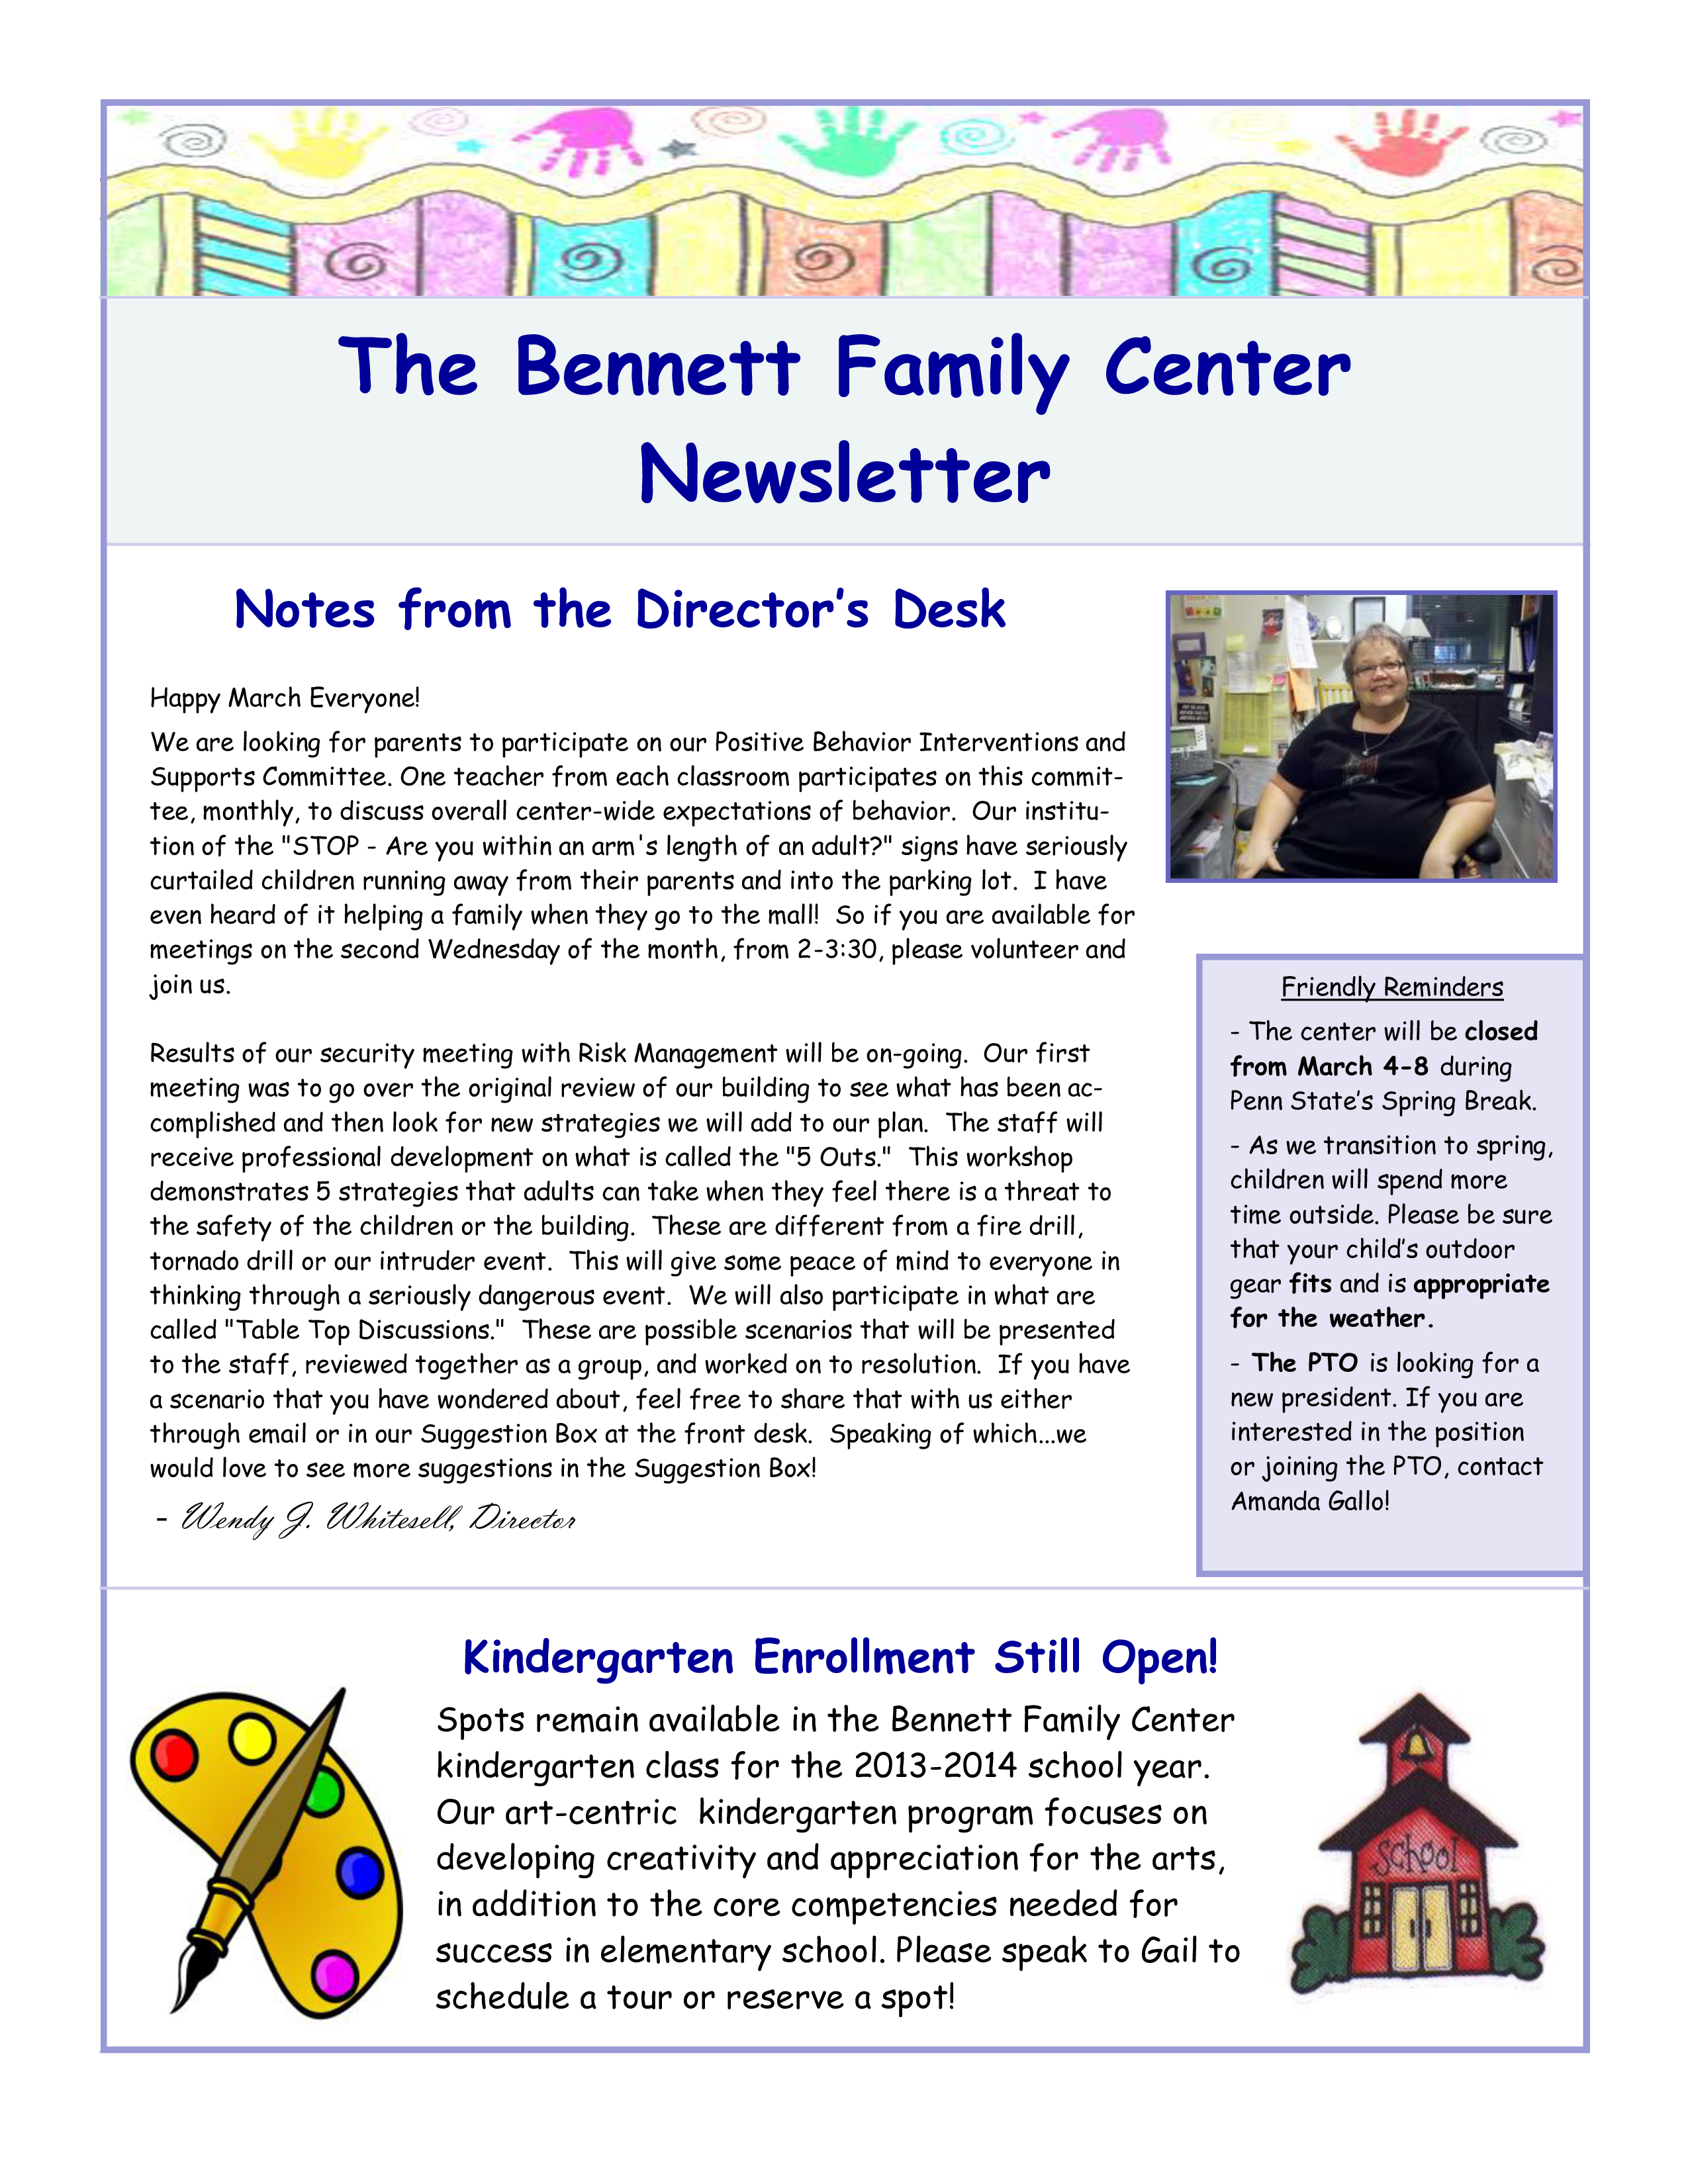 free family center newsletter templates at